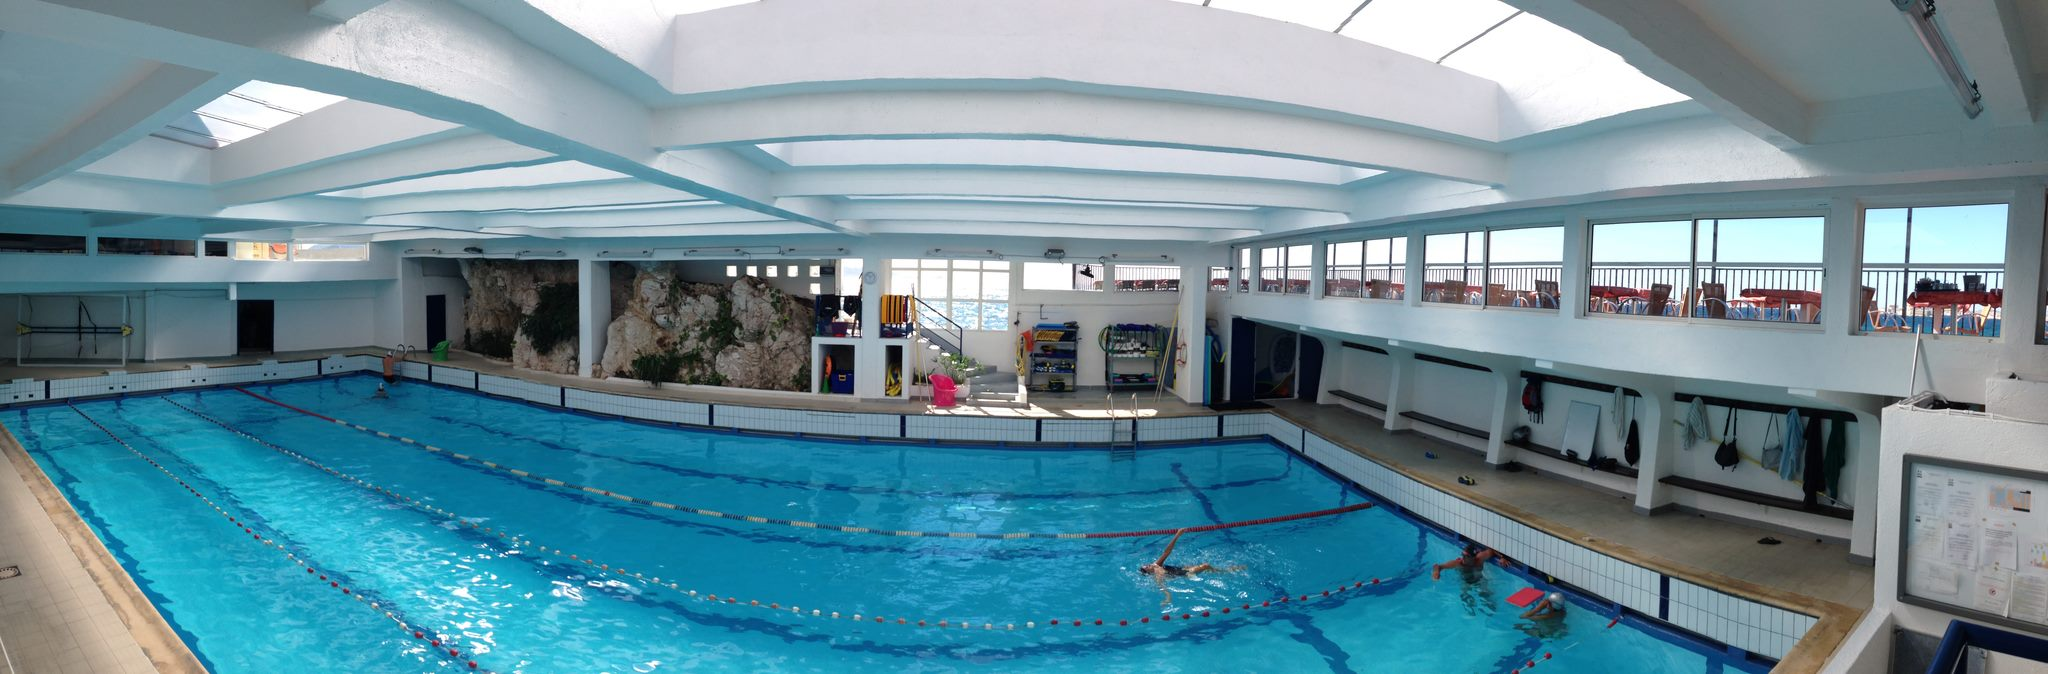 Scc marseille piscine des dauphins un club sportif for Piscine marseille